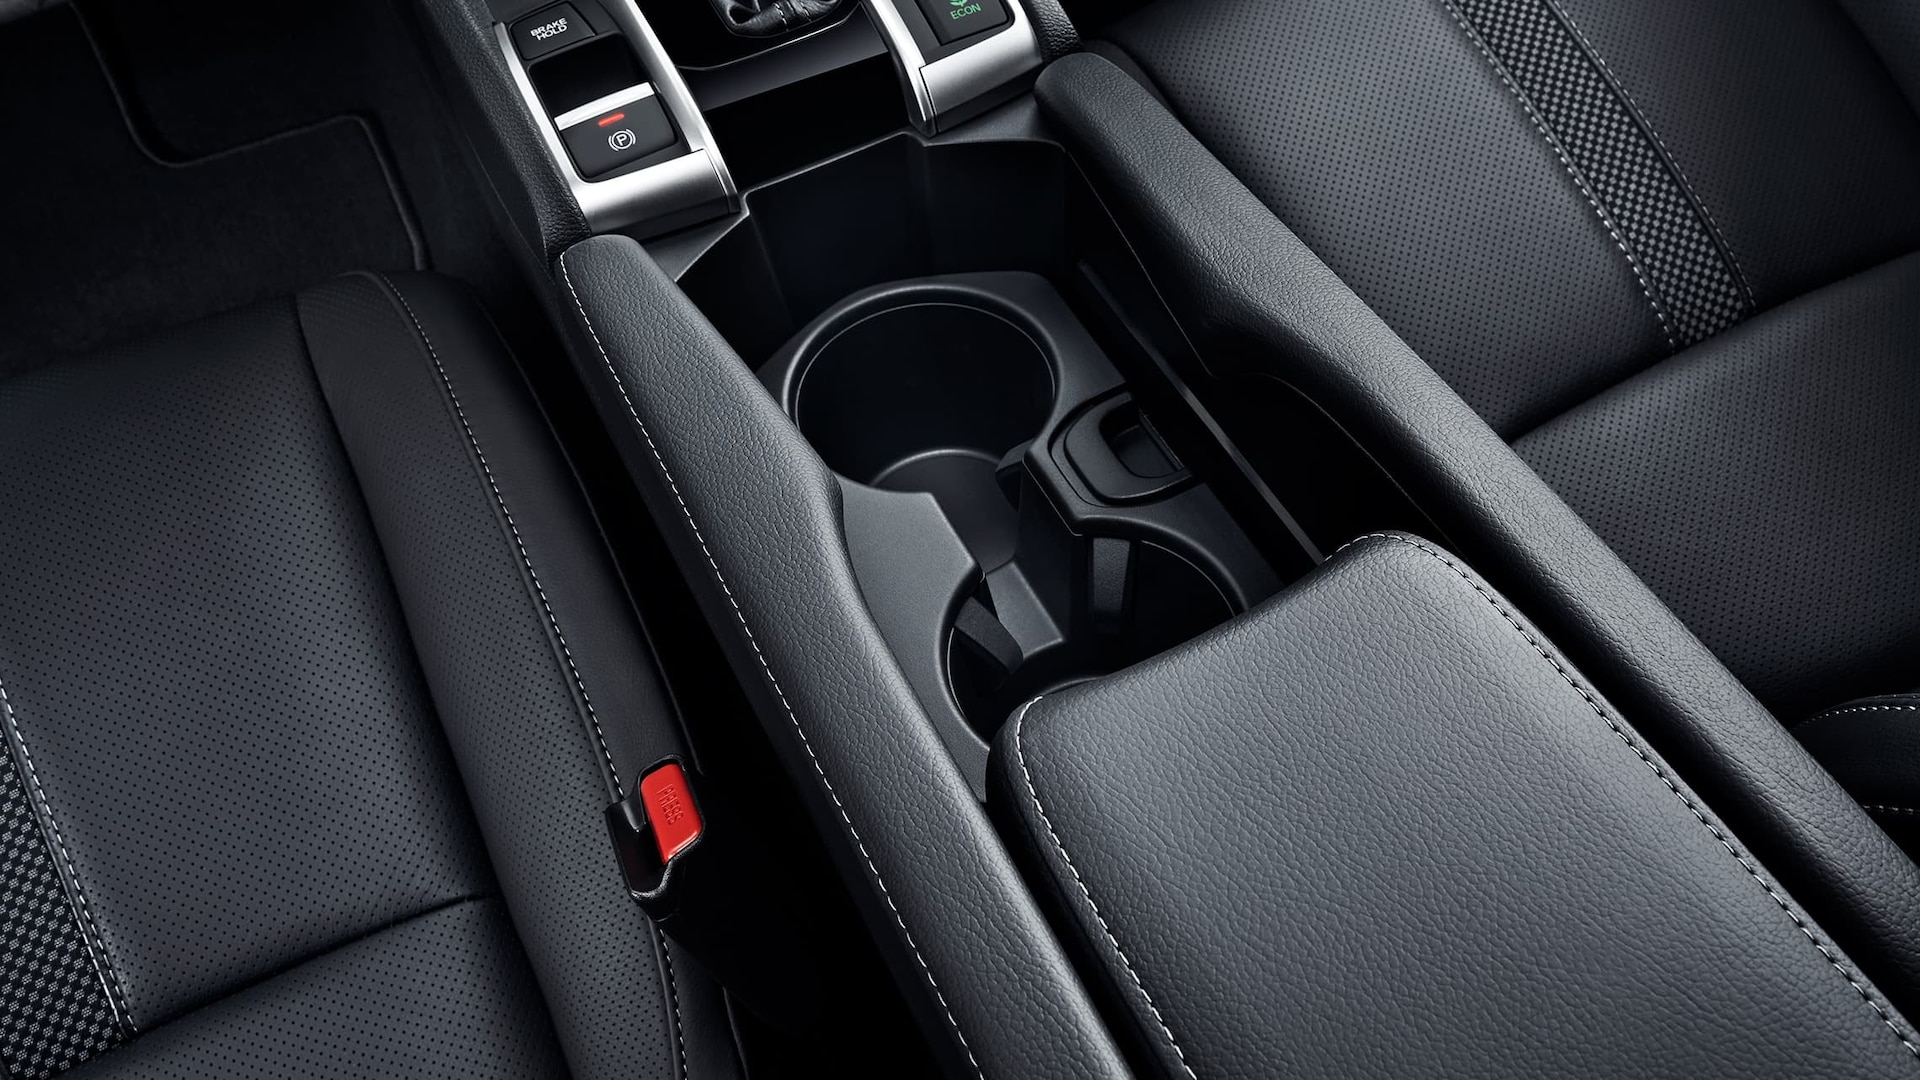 Detail of center console and beverage holders in the 2020 Honda Civic Touring Sedan.